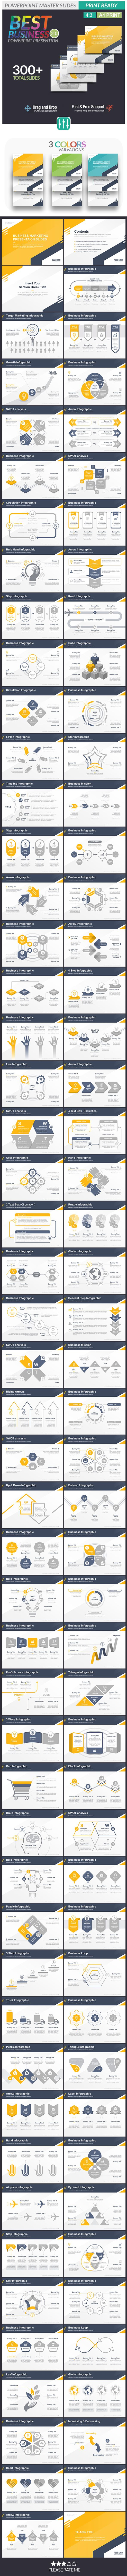 Best Business PowerPoint Templates Images On Pinterest Ppt - Best of notebook paper powerpoint template design